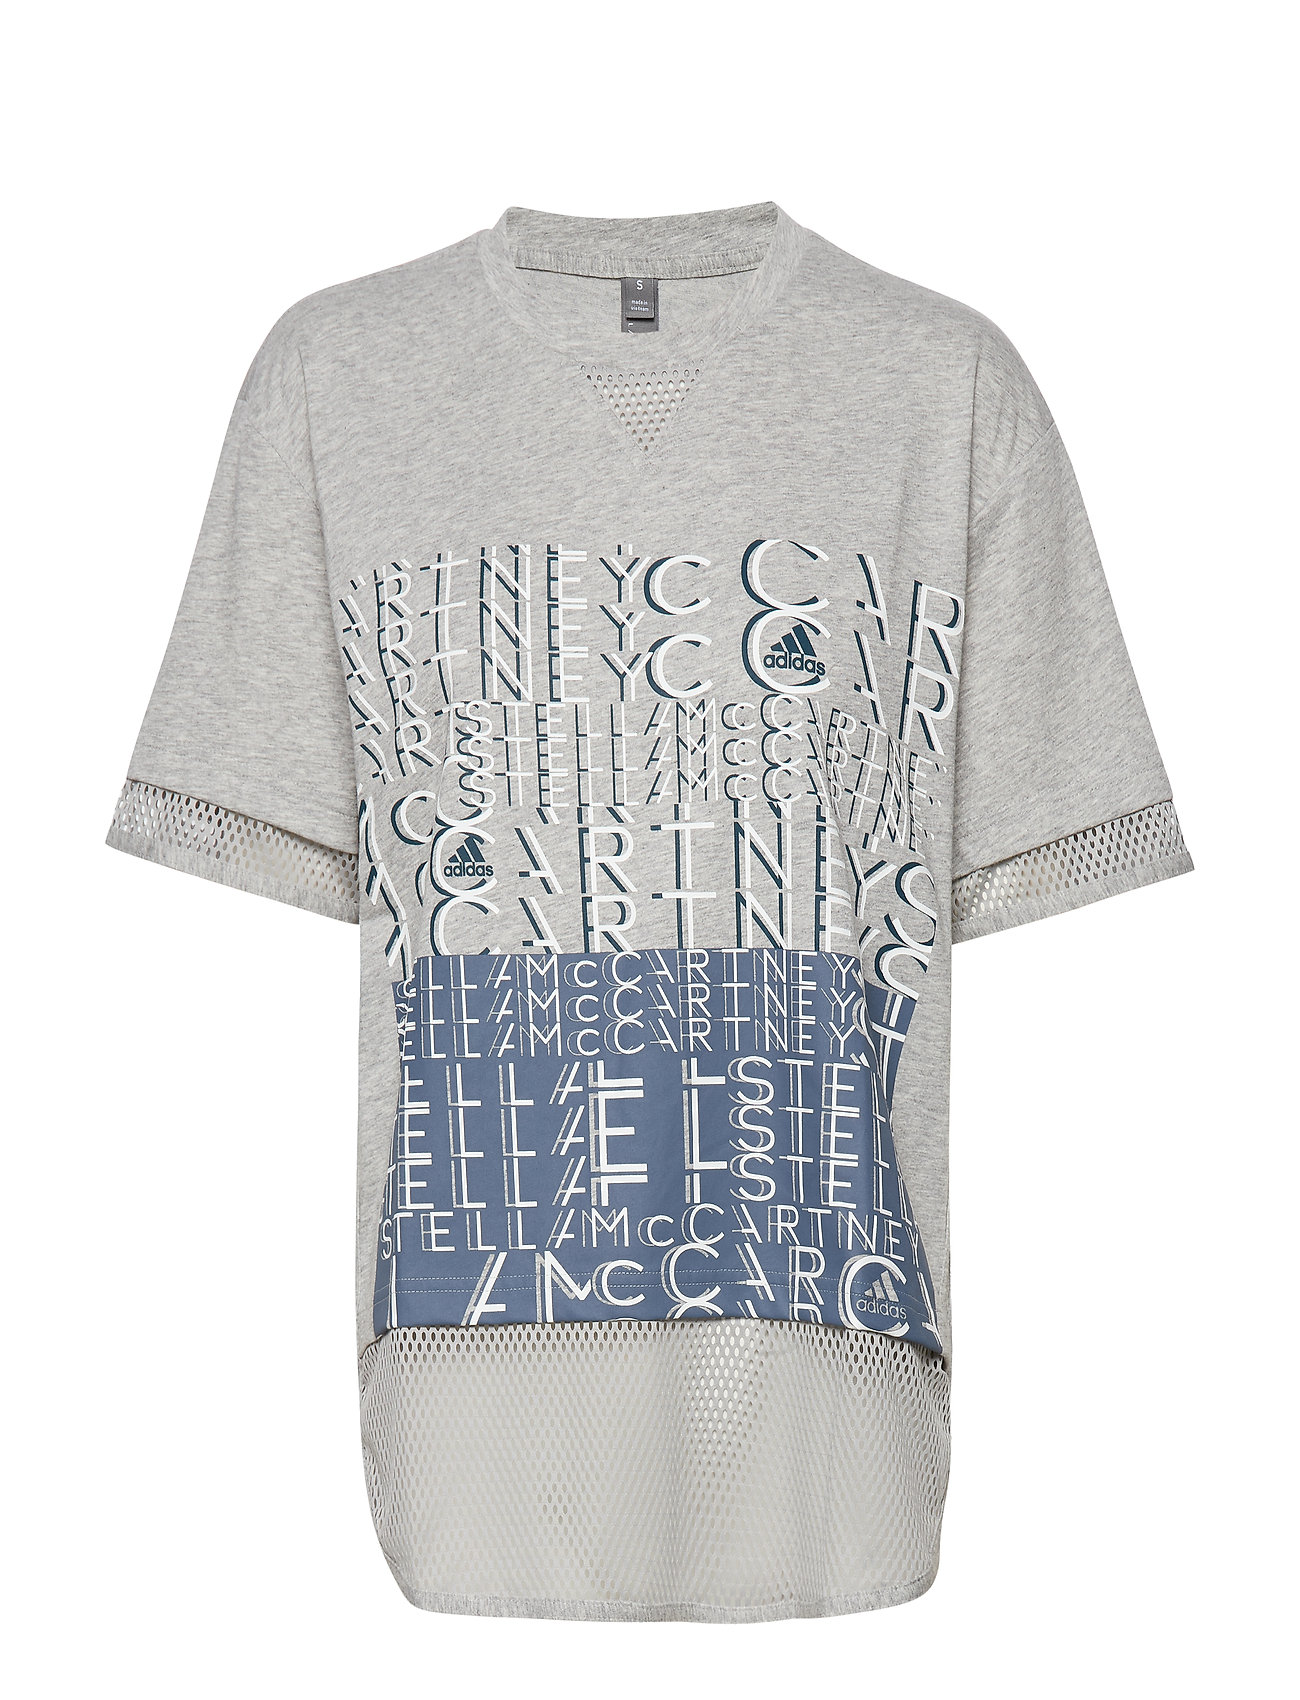 adidas by Stella McCartney LOGO TEE - MGREYH